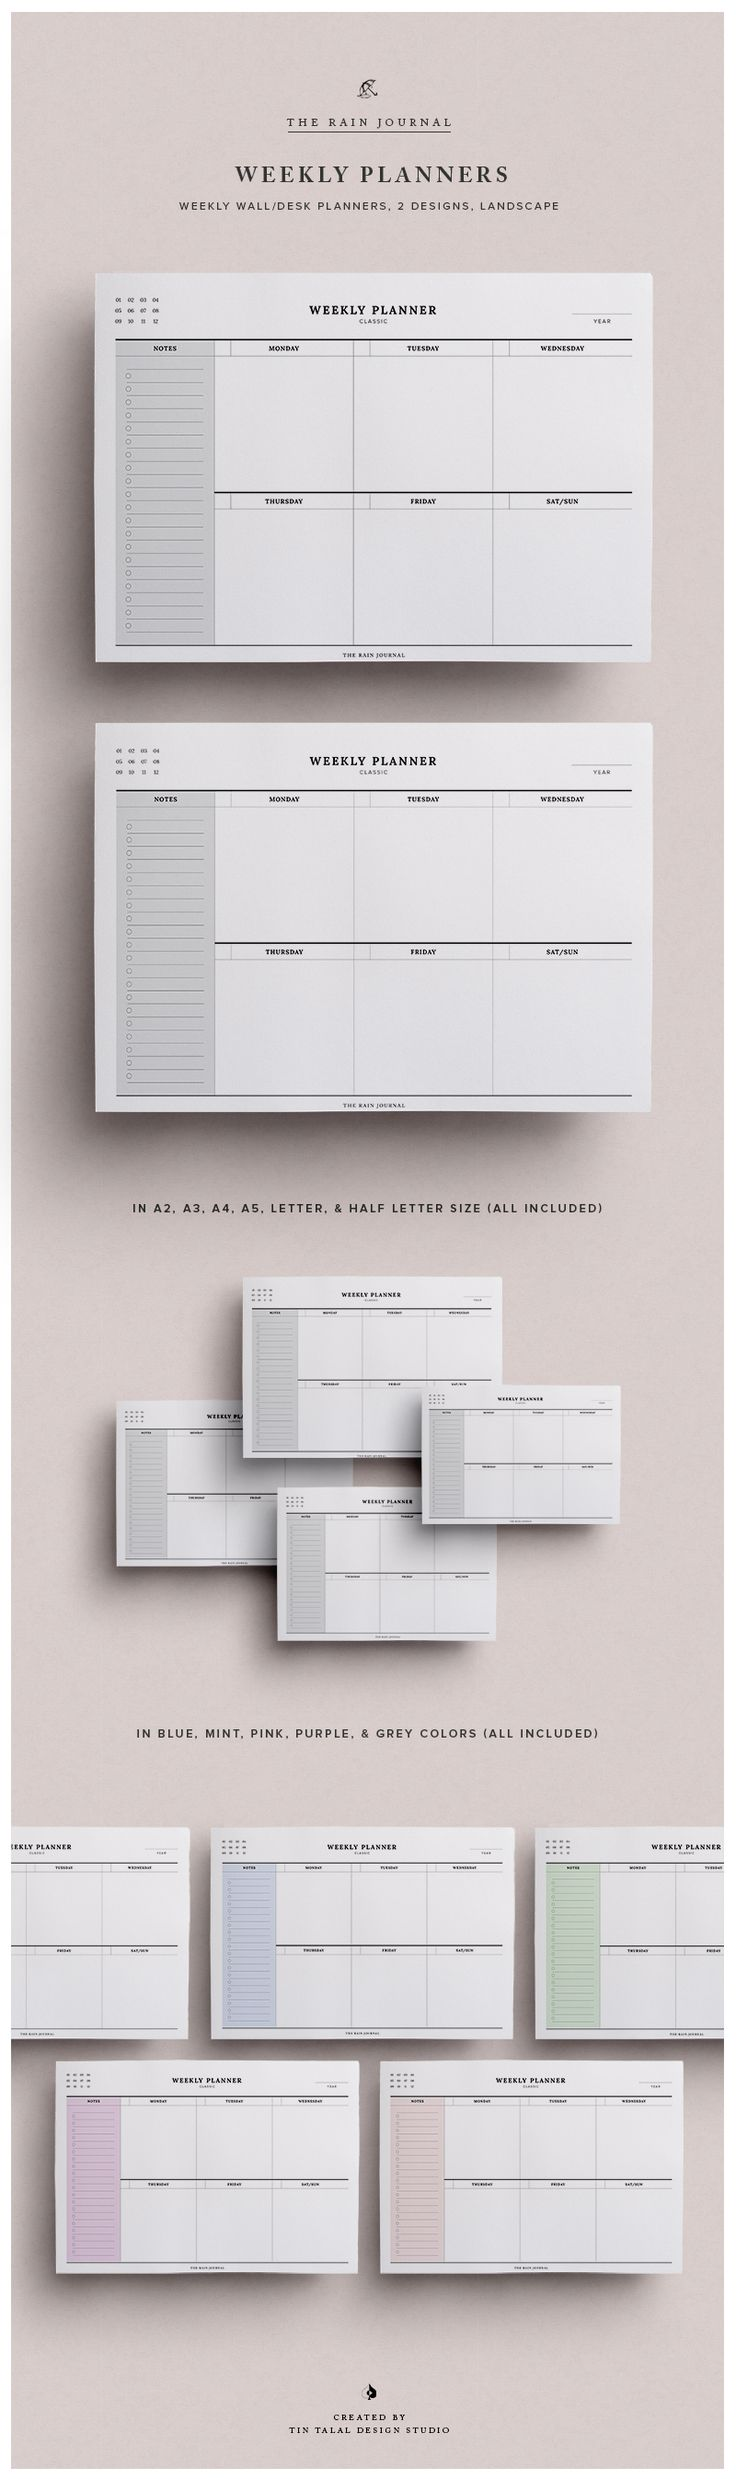 Printable Weekly Organizer for desk or wall. It can also be inserted in you favorite planner! Undated Weekly Planner, Weekly Agenda, Weekly Organizer, Weekly Planner Pages, Weekly Planner Insert, A5 Weekly, Wall Planner, Desk Planner